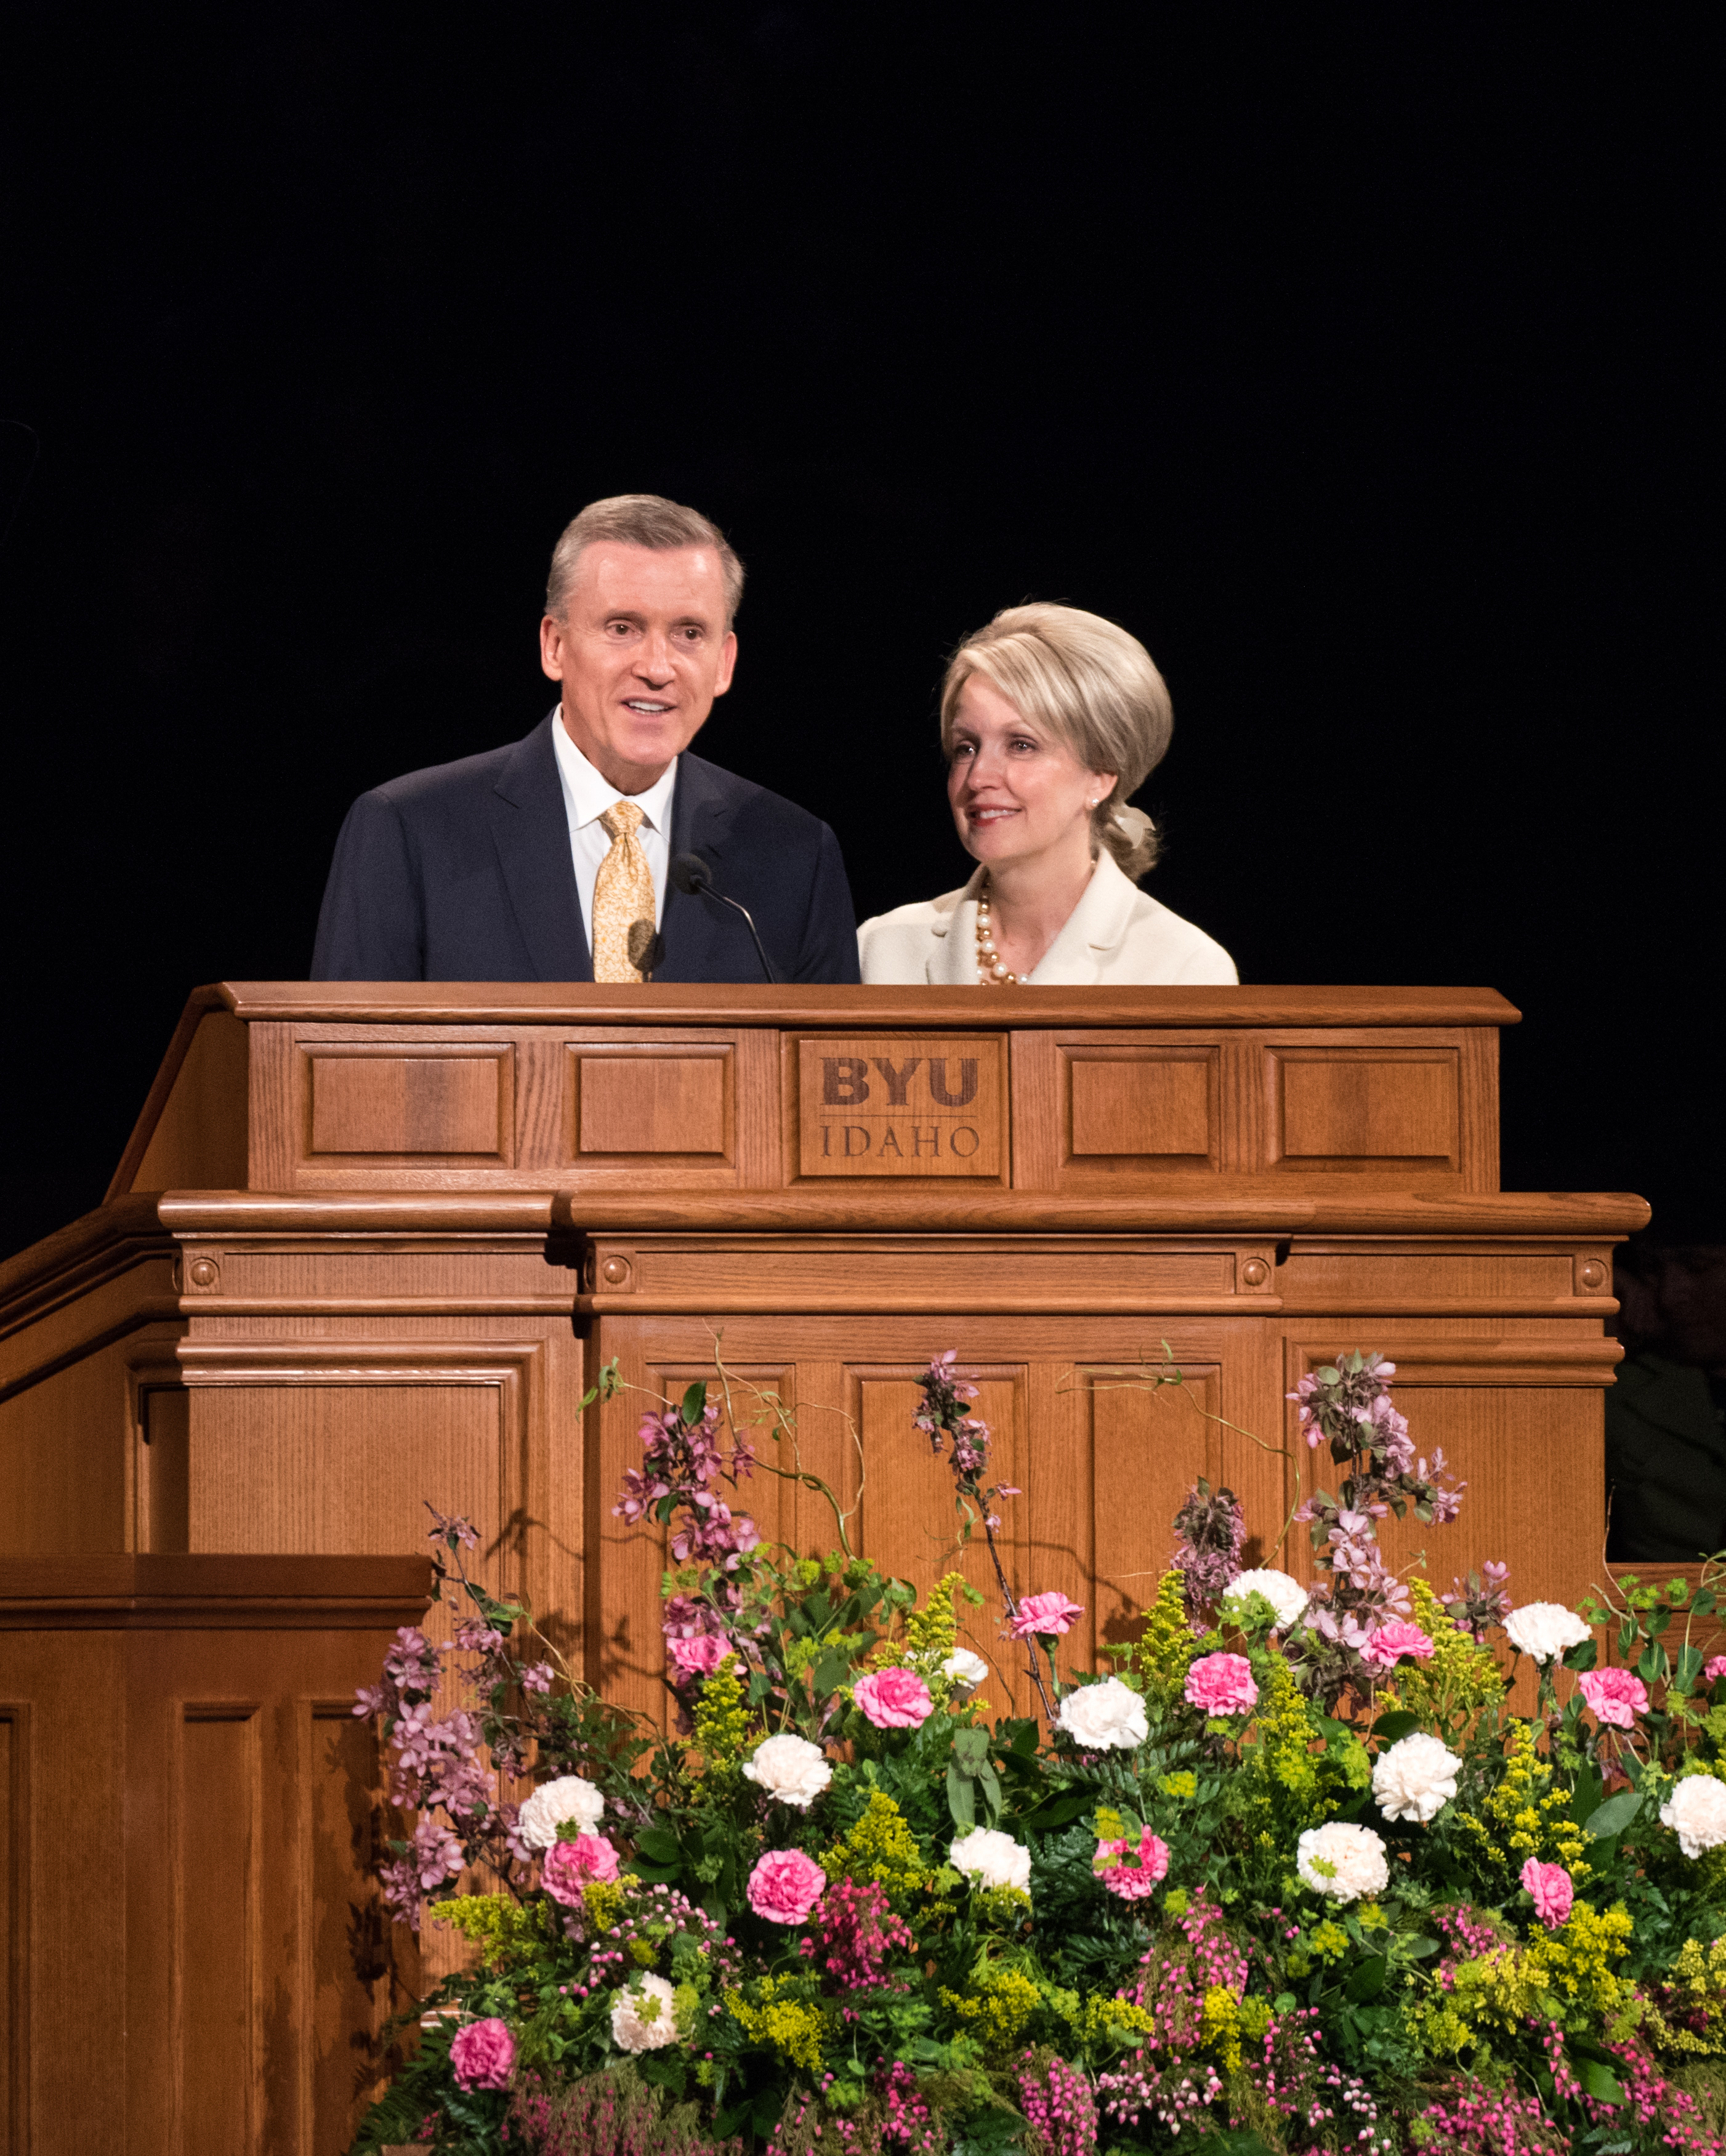 Elder Kevin R. Duncan, and his wife Sister Nancy Duncan, address students at a BYU-Idaho Devotional on May 21, 2019.